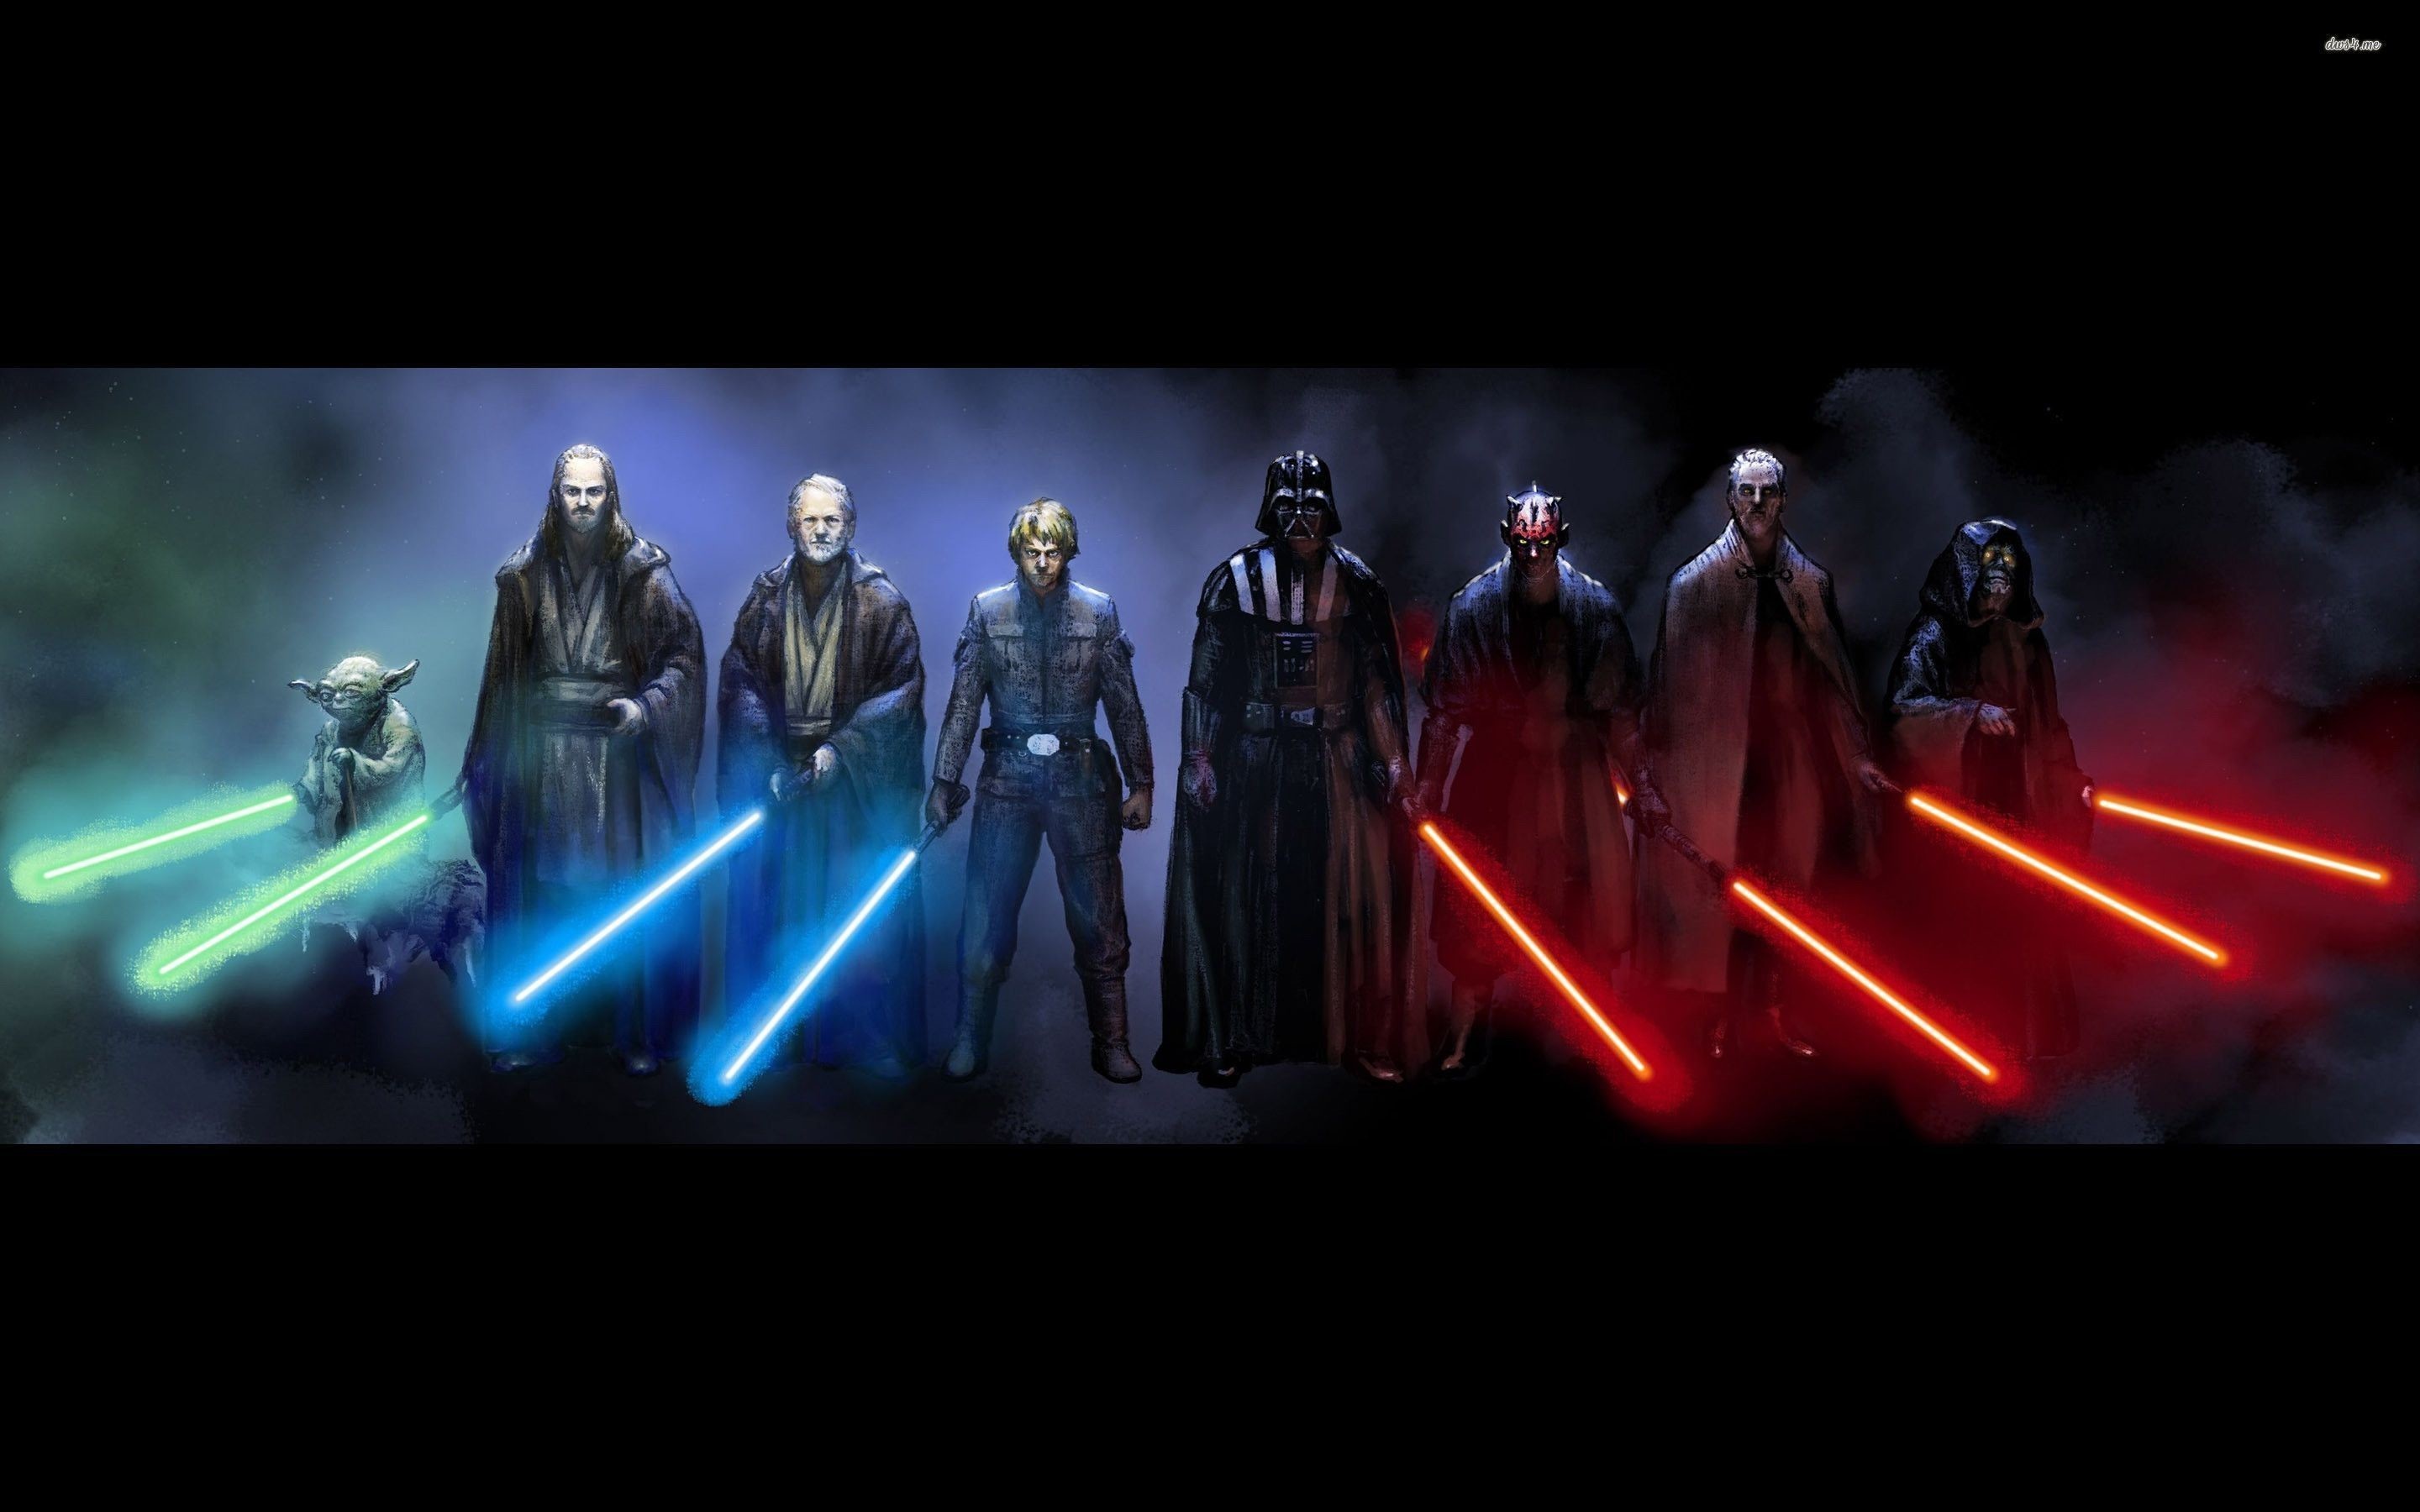 1920x1200 Star Wars Sith Wallpapers Picture For Free Wallpaper